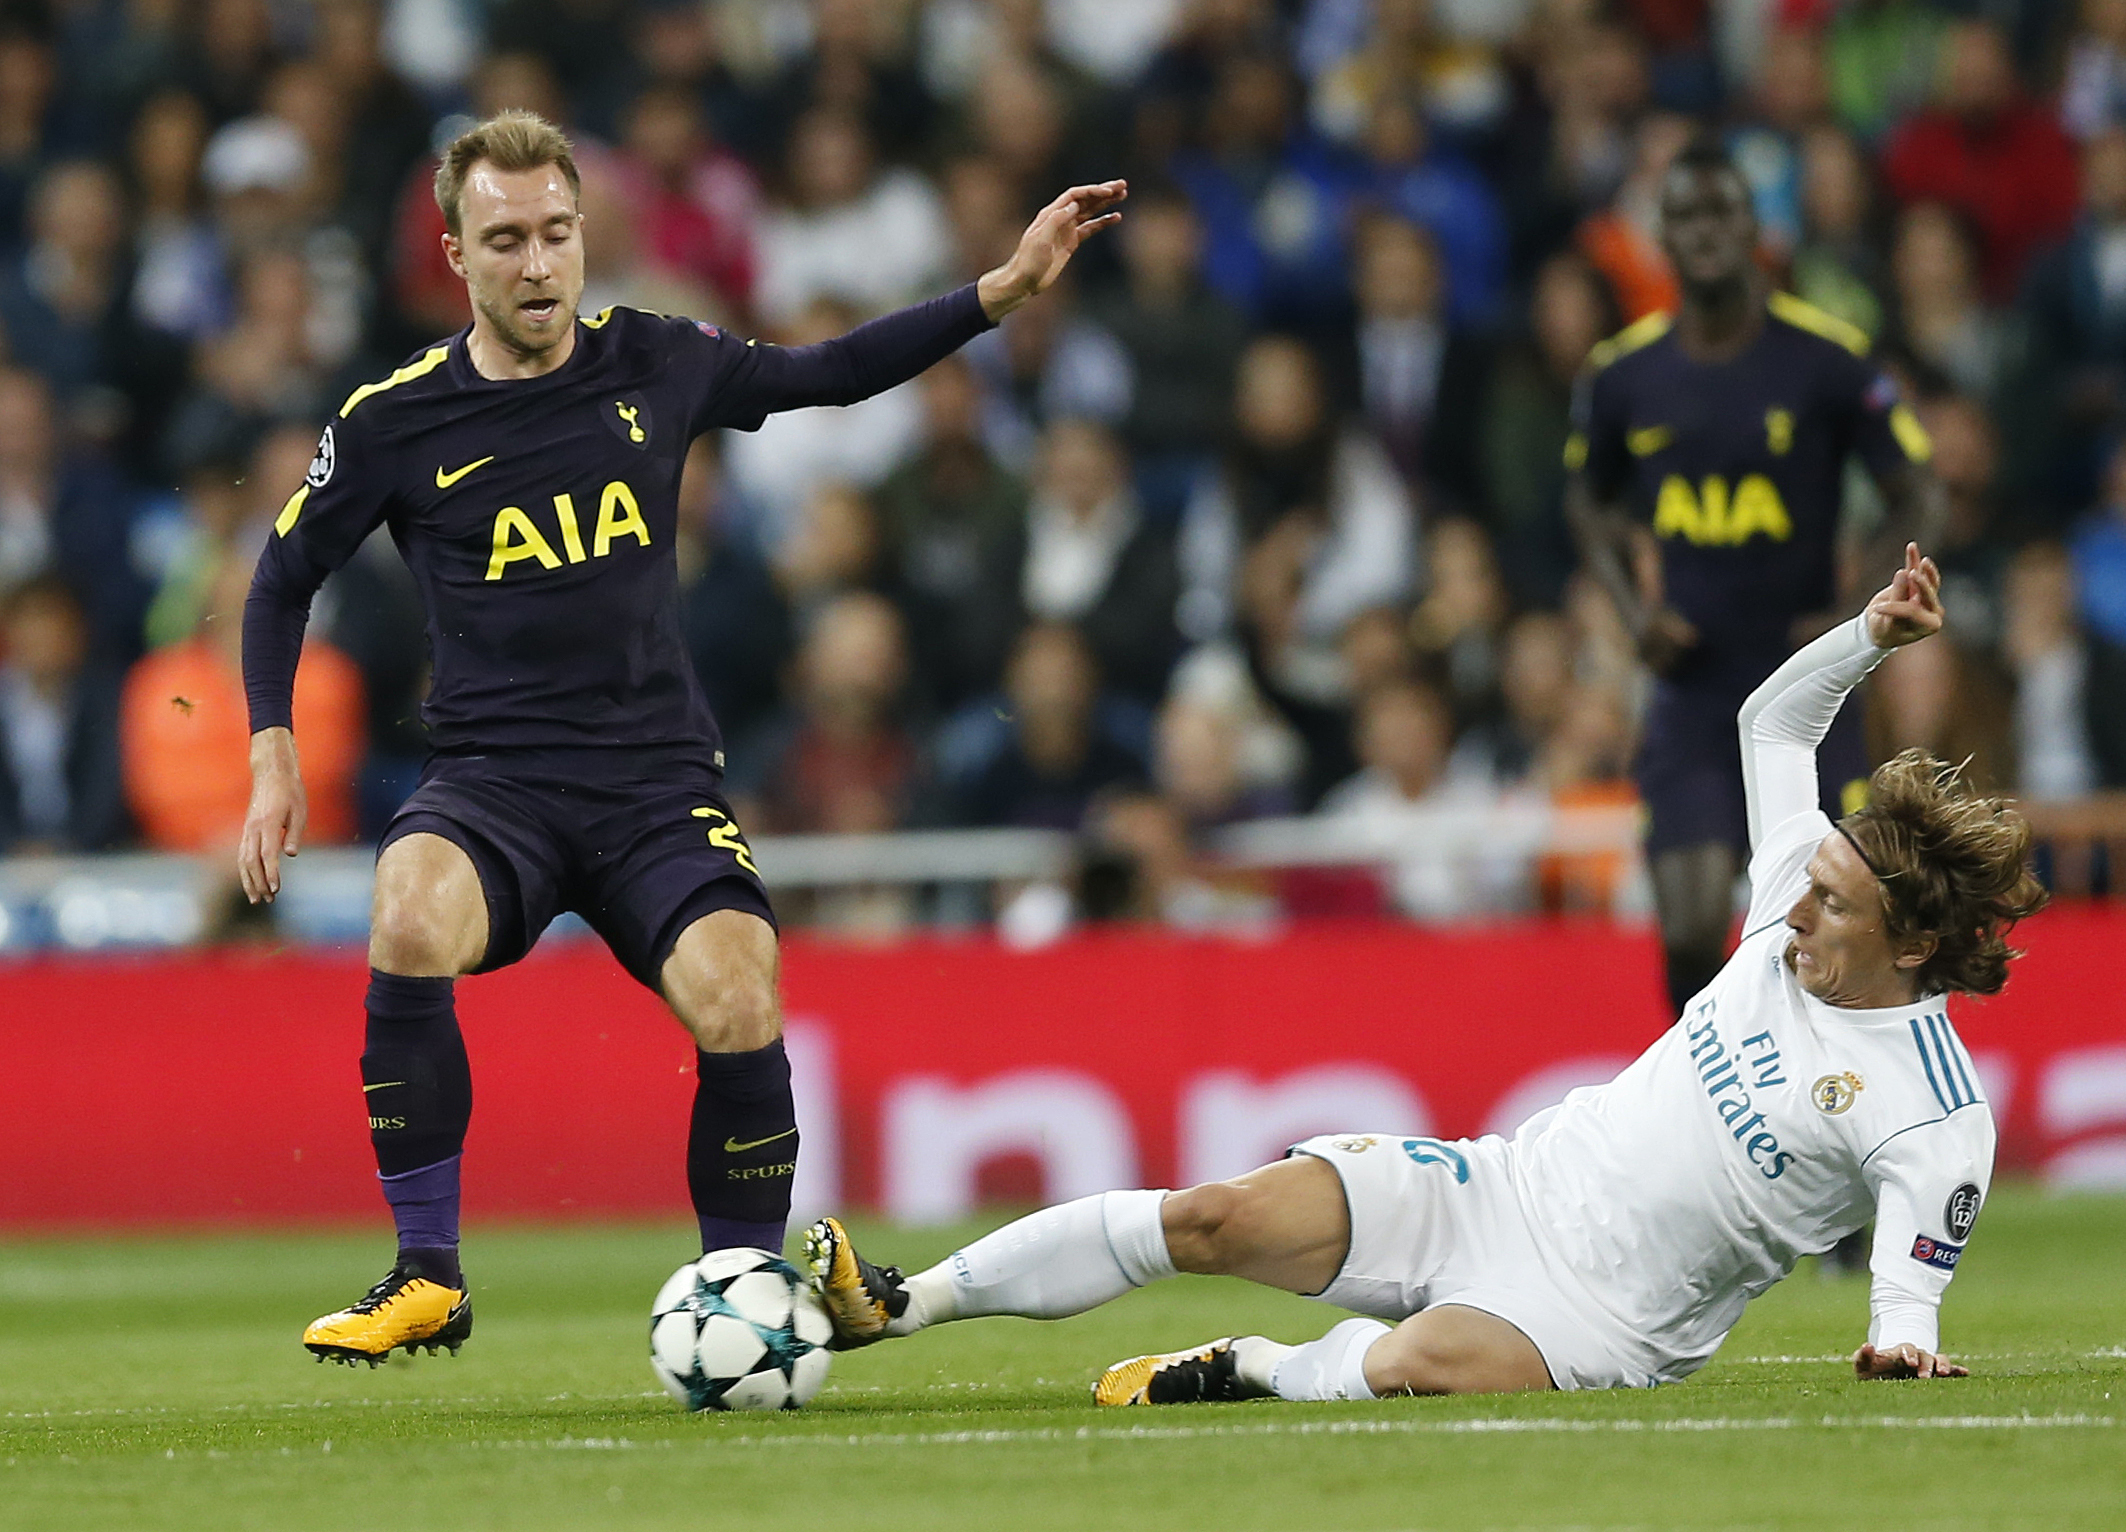 Demand Tottenham star reveals his career plans